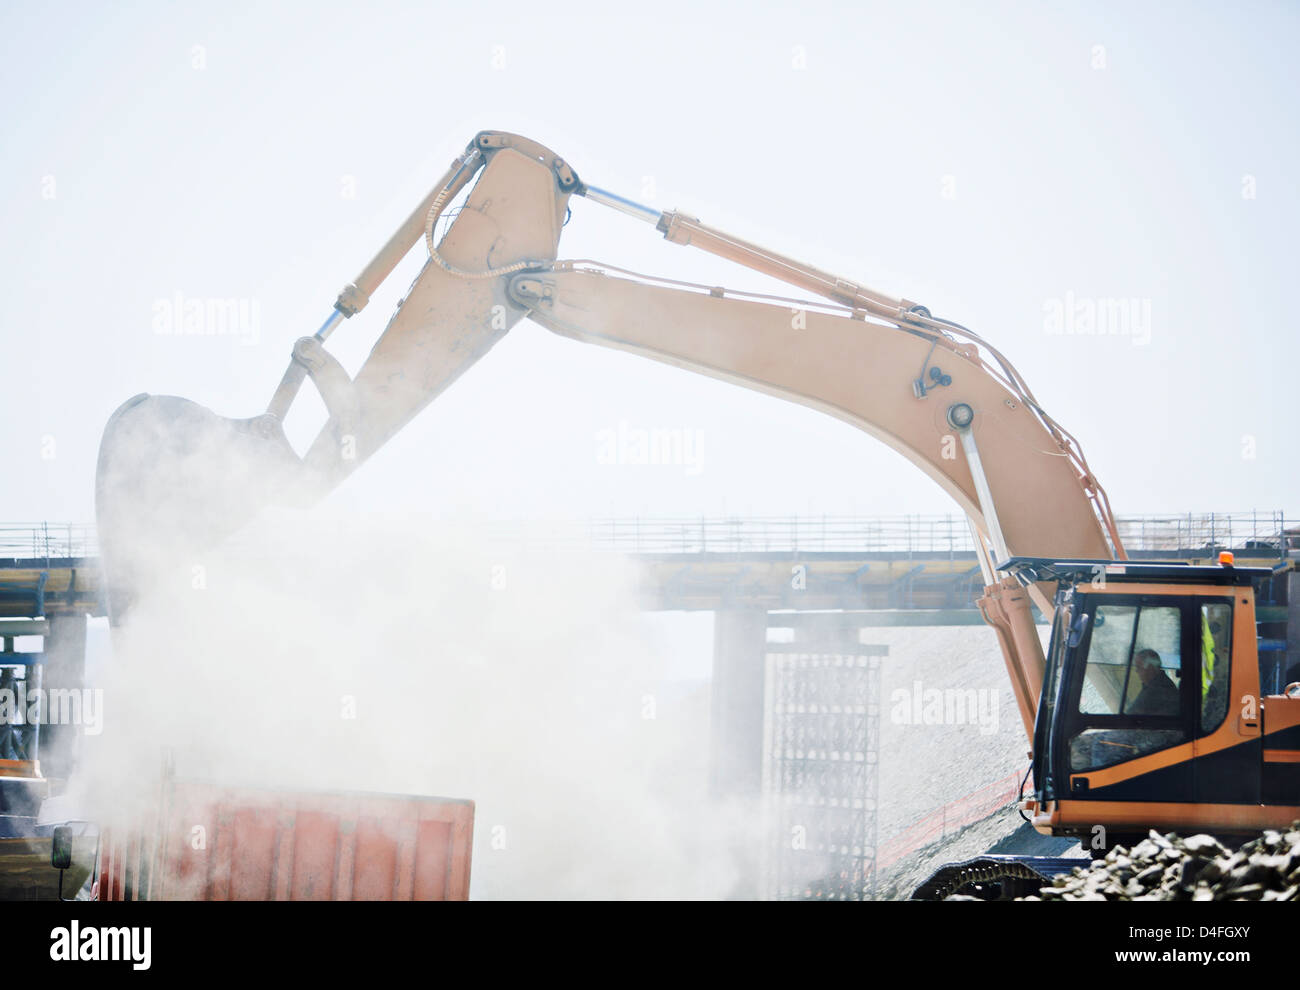 Digger working on site - Stock Image